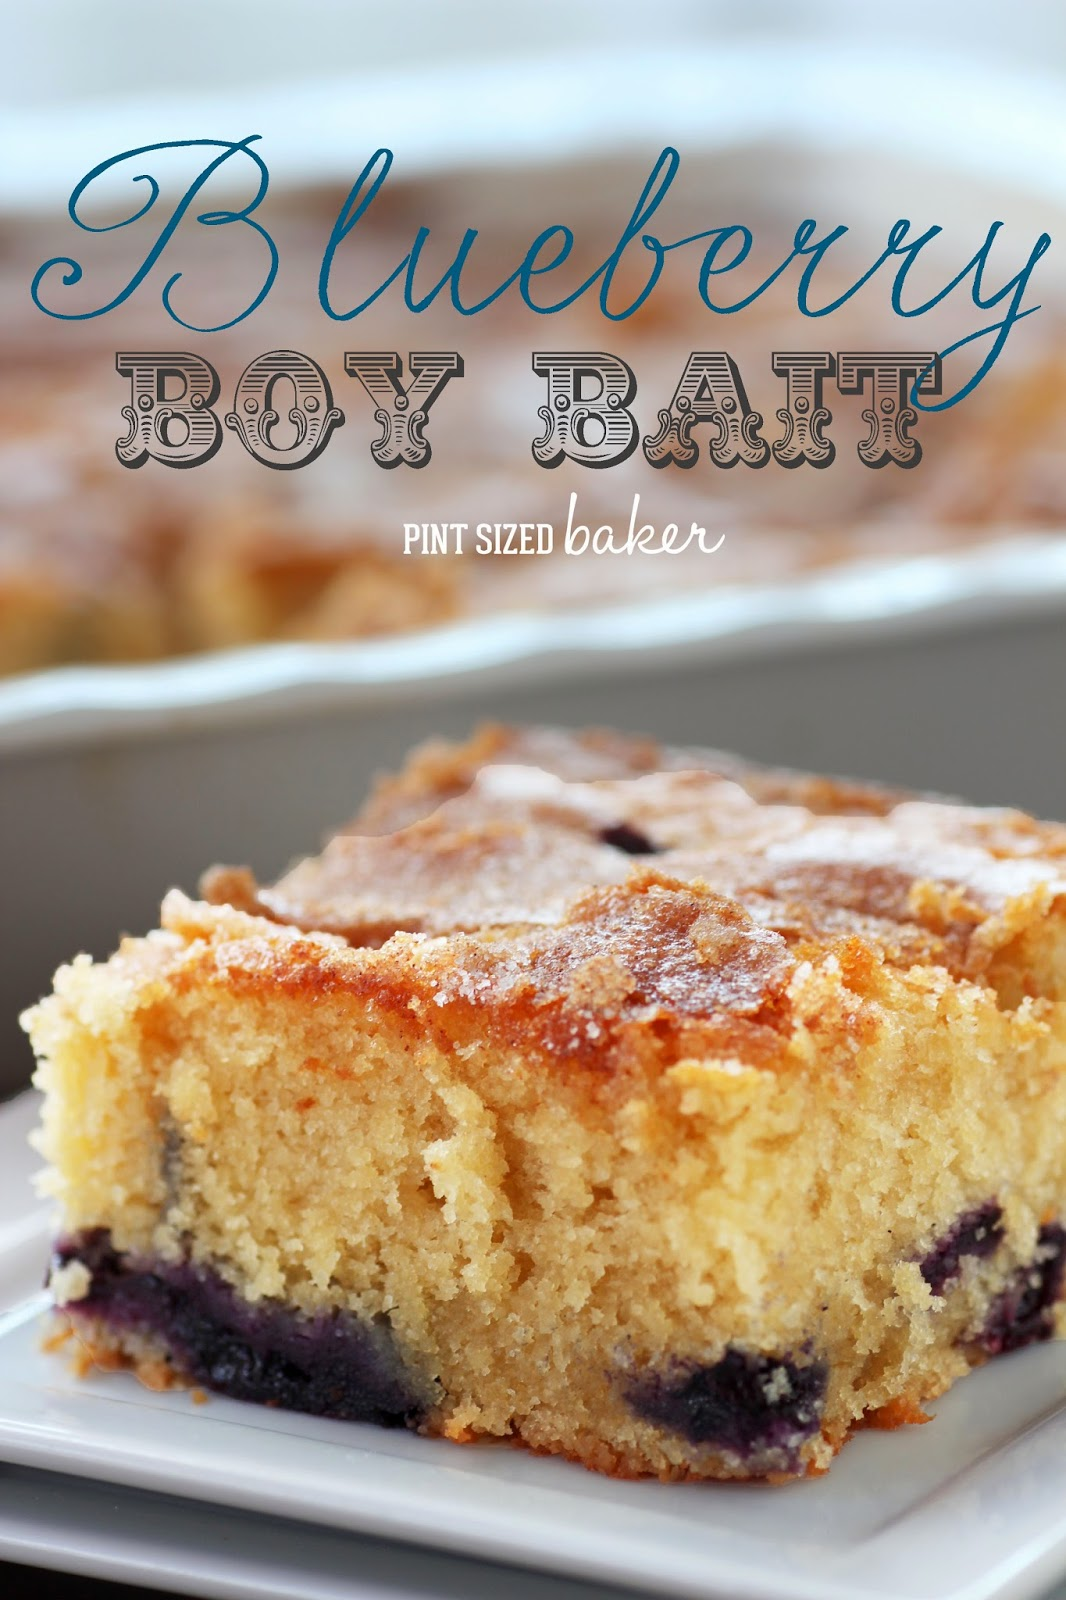 Enjoy this delicious Blueberry Cake. It's sure to make the all the boys happy! from @PintSizedBaker